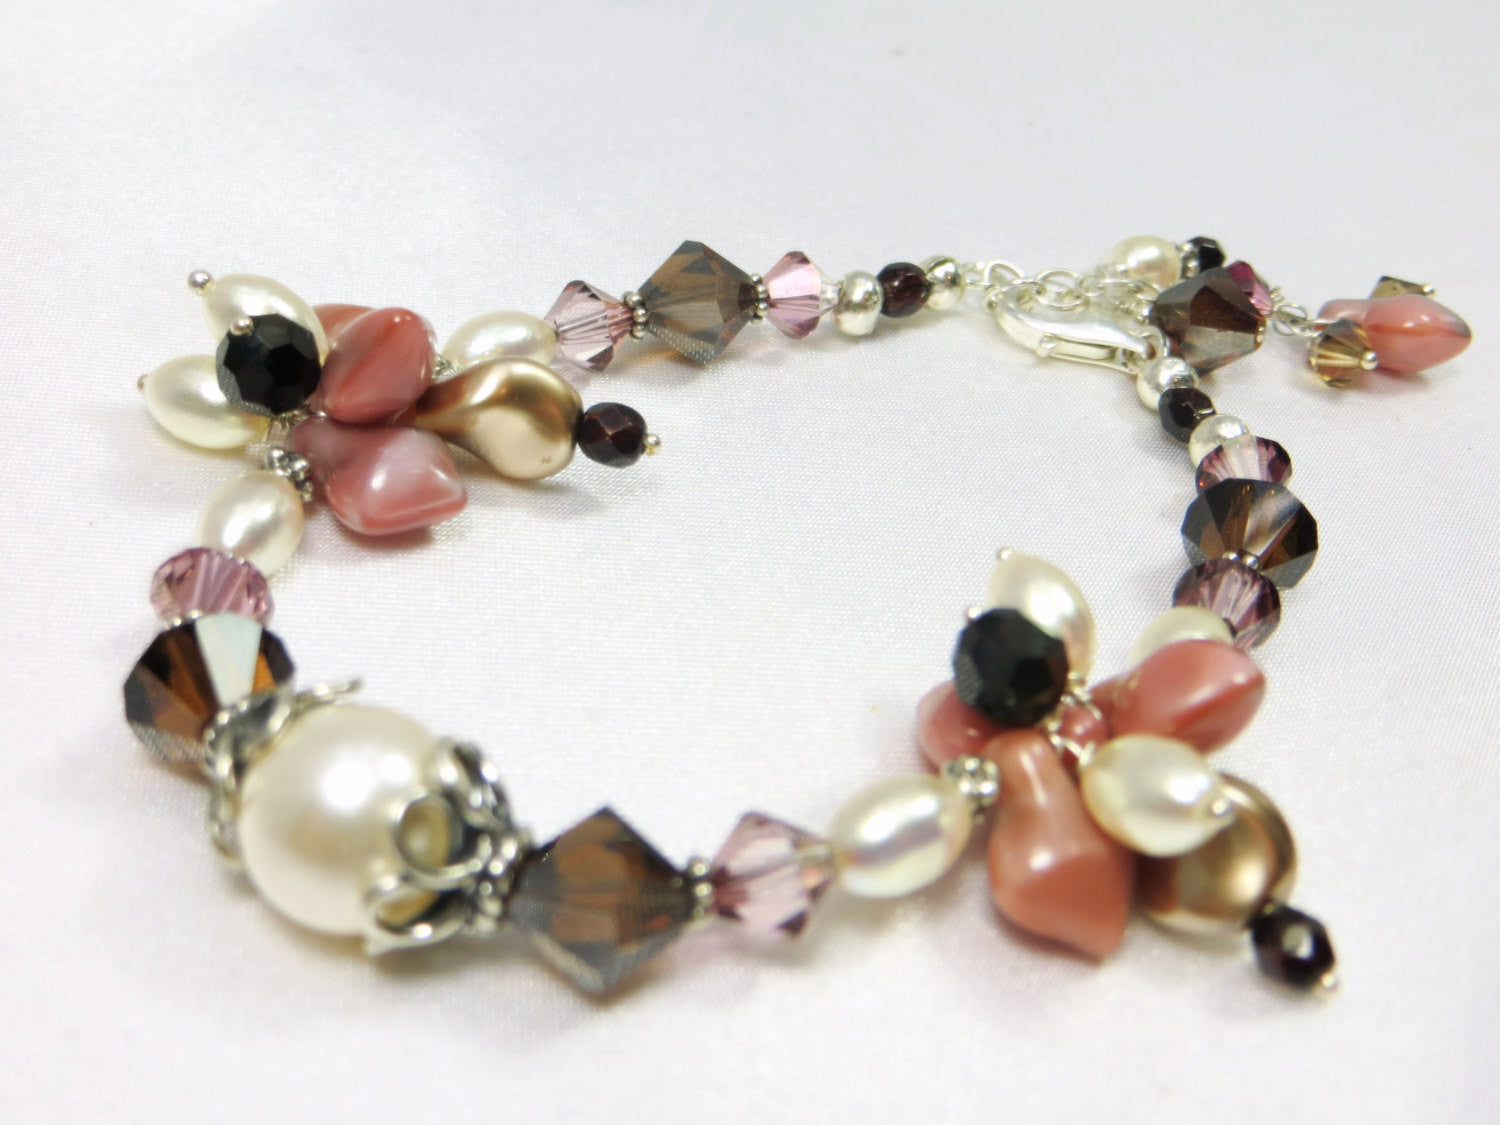 Mauve Pink Ivory and Brown Bracelet with Mookalite Stones, Freshwater Pearls, Swarovski - Odyssey Creations